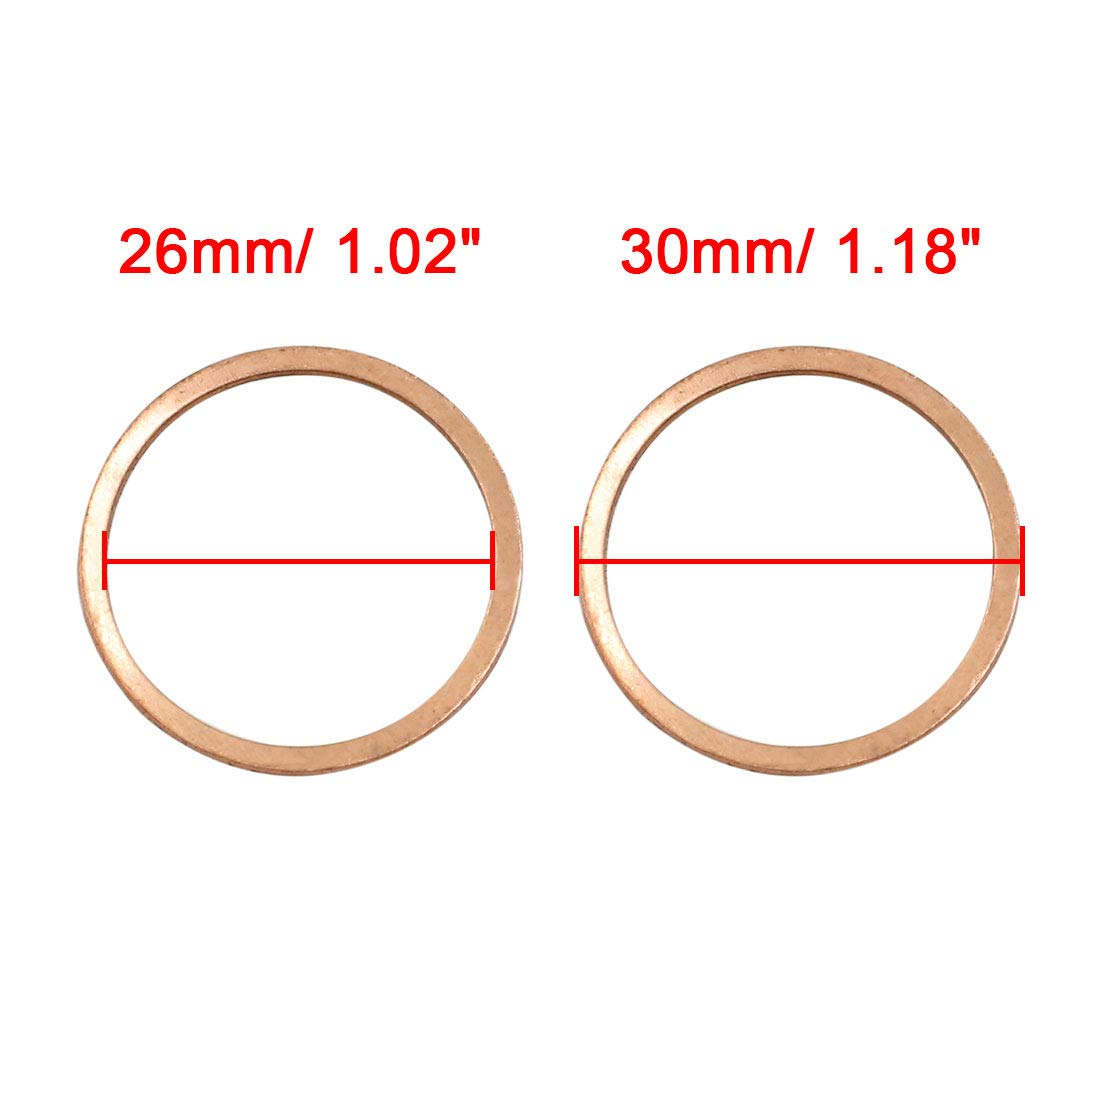 X AUTOHAUX 20pcs 26mm Inner Dia Copper Washers Flat Sealing Gaskets Ring for Car by X AUTOHAUX (Image #3)